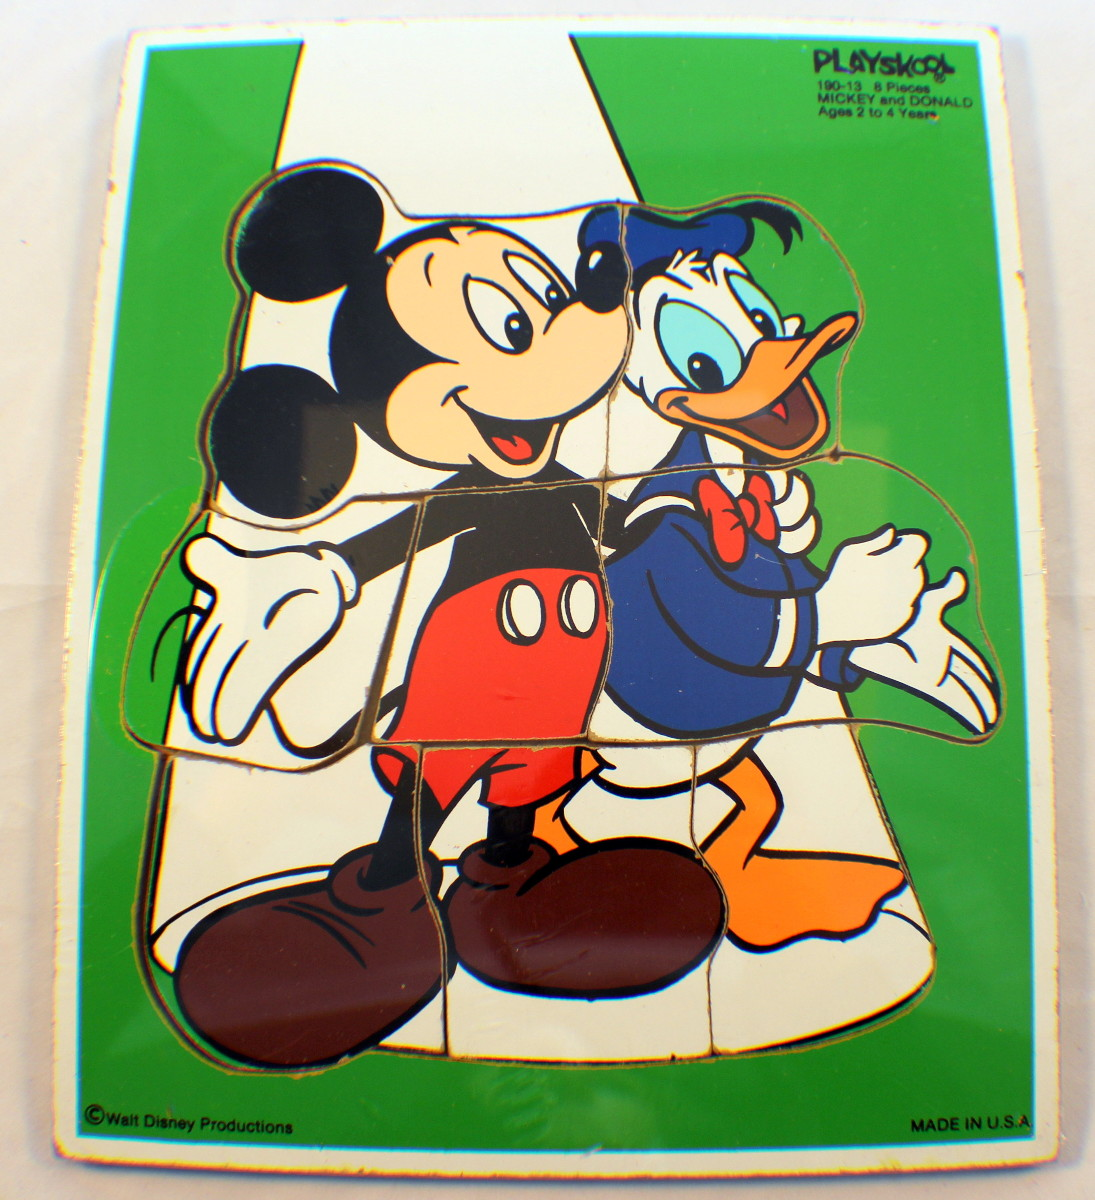 Playskool Vintage Wooden Puzzle Mickey Mouse Donald Duck Best